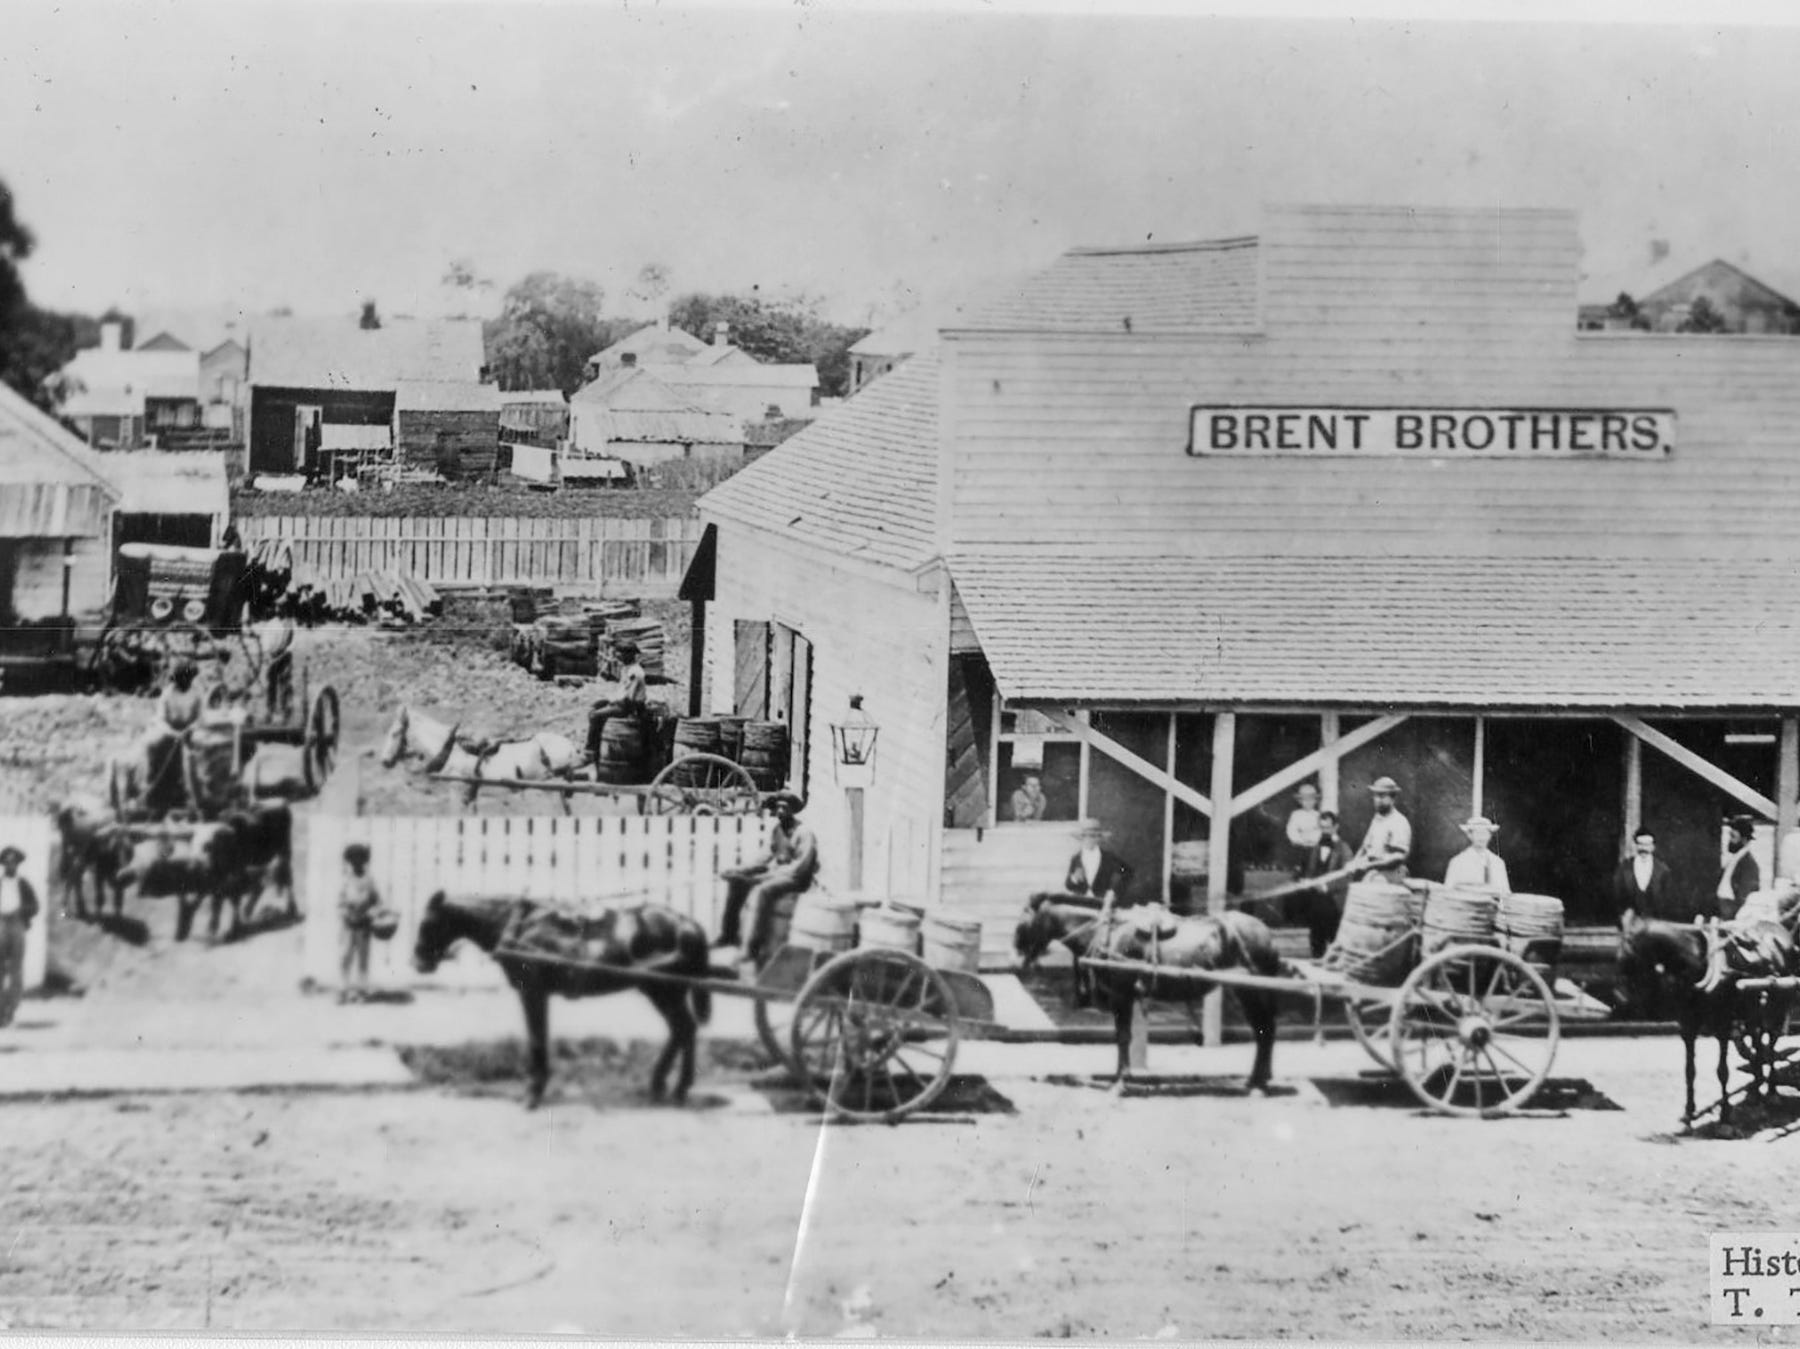 Brent Brothers store on Palafox Street. Date unknown.